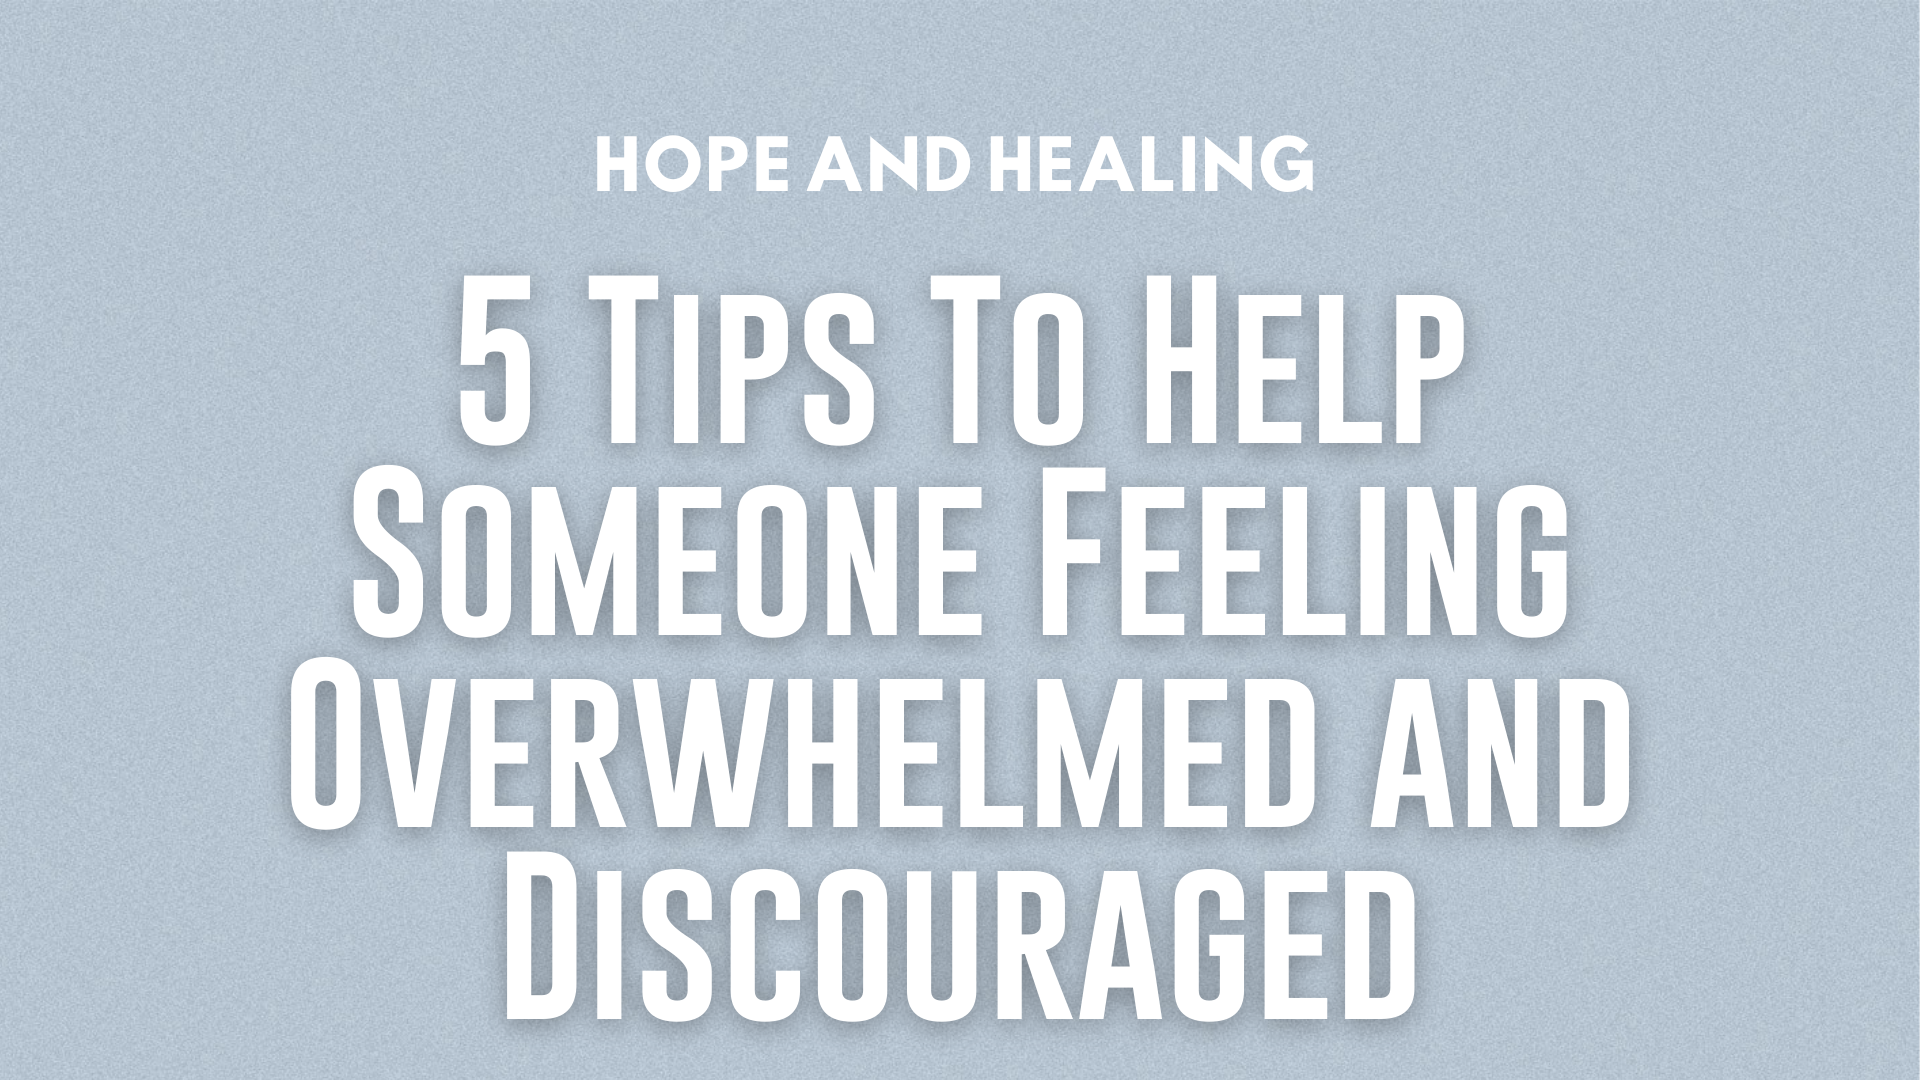 5 Tips To Help Someone Feeling Overwhelmed and Discouraged